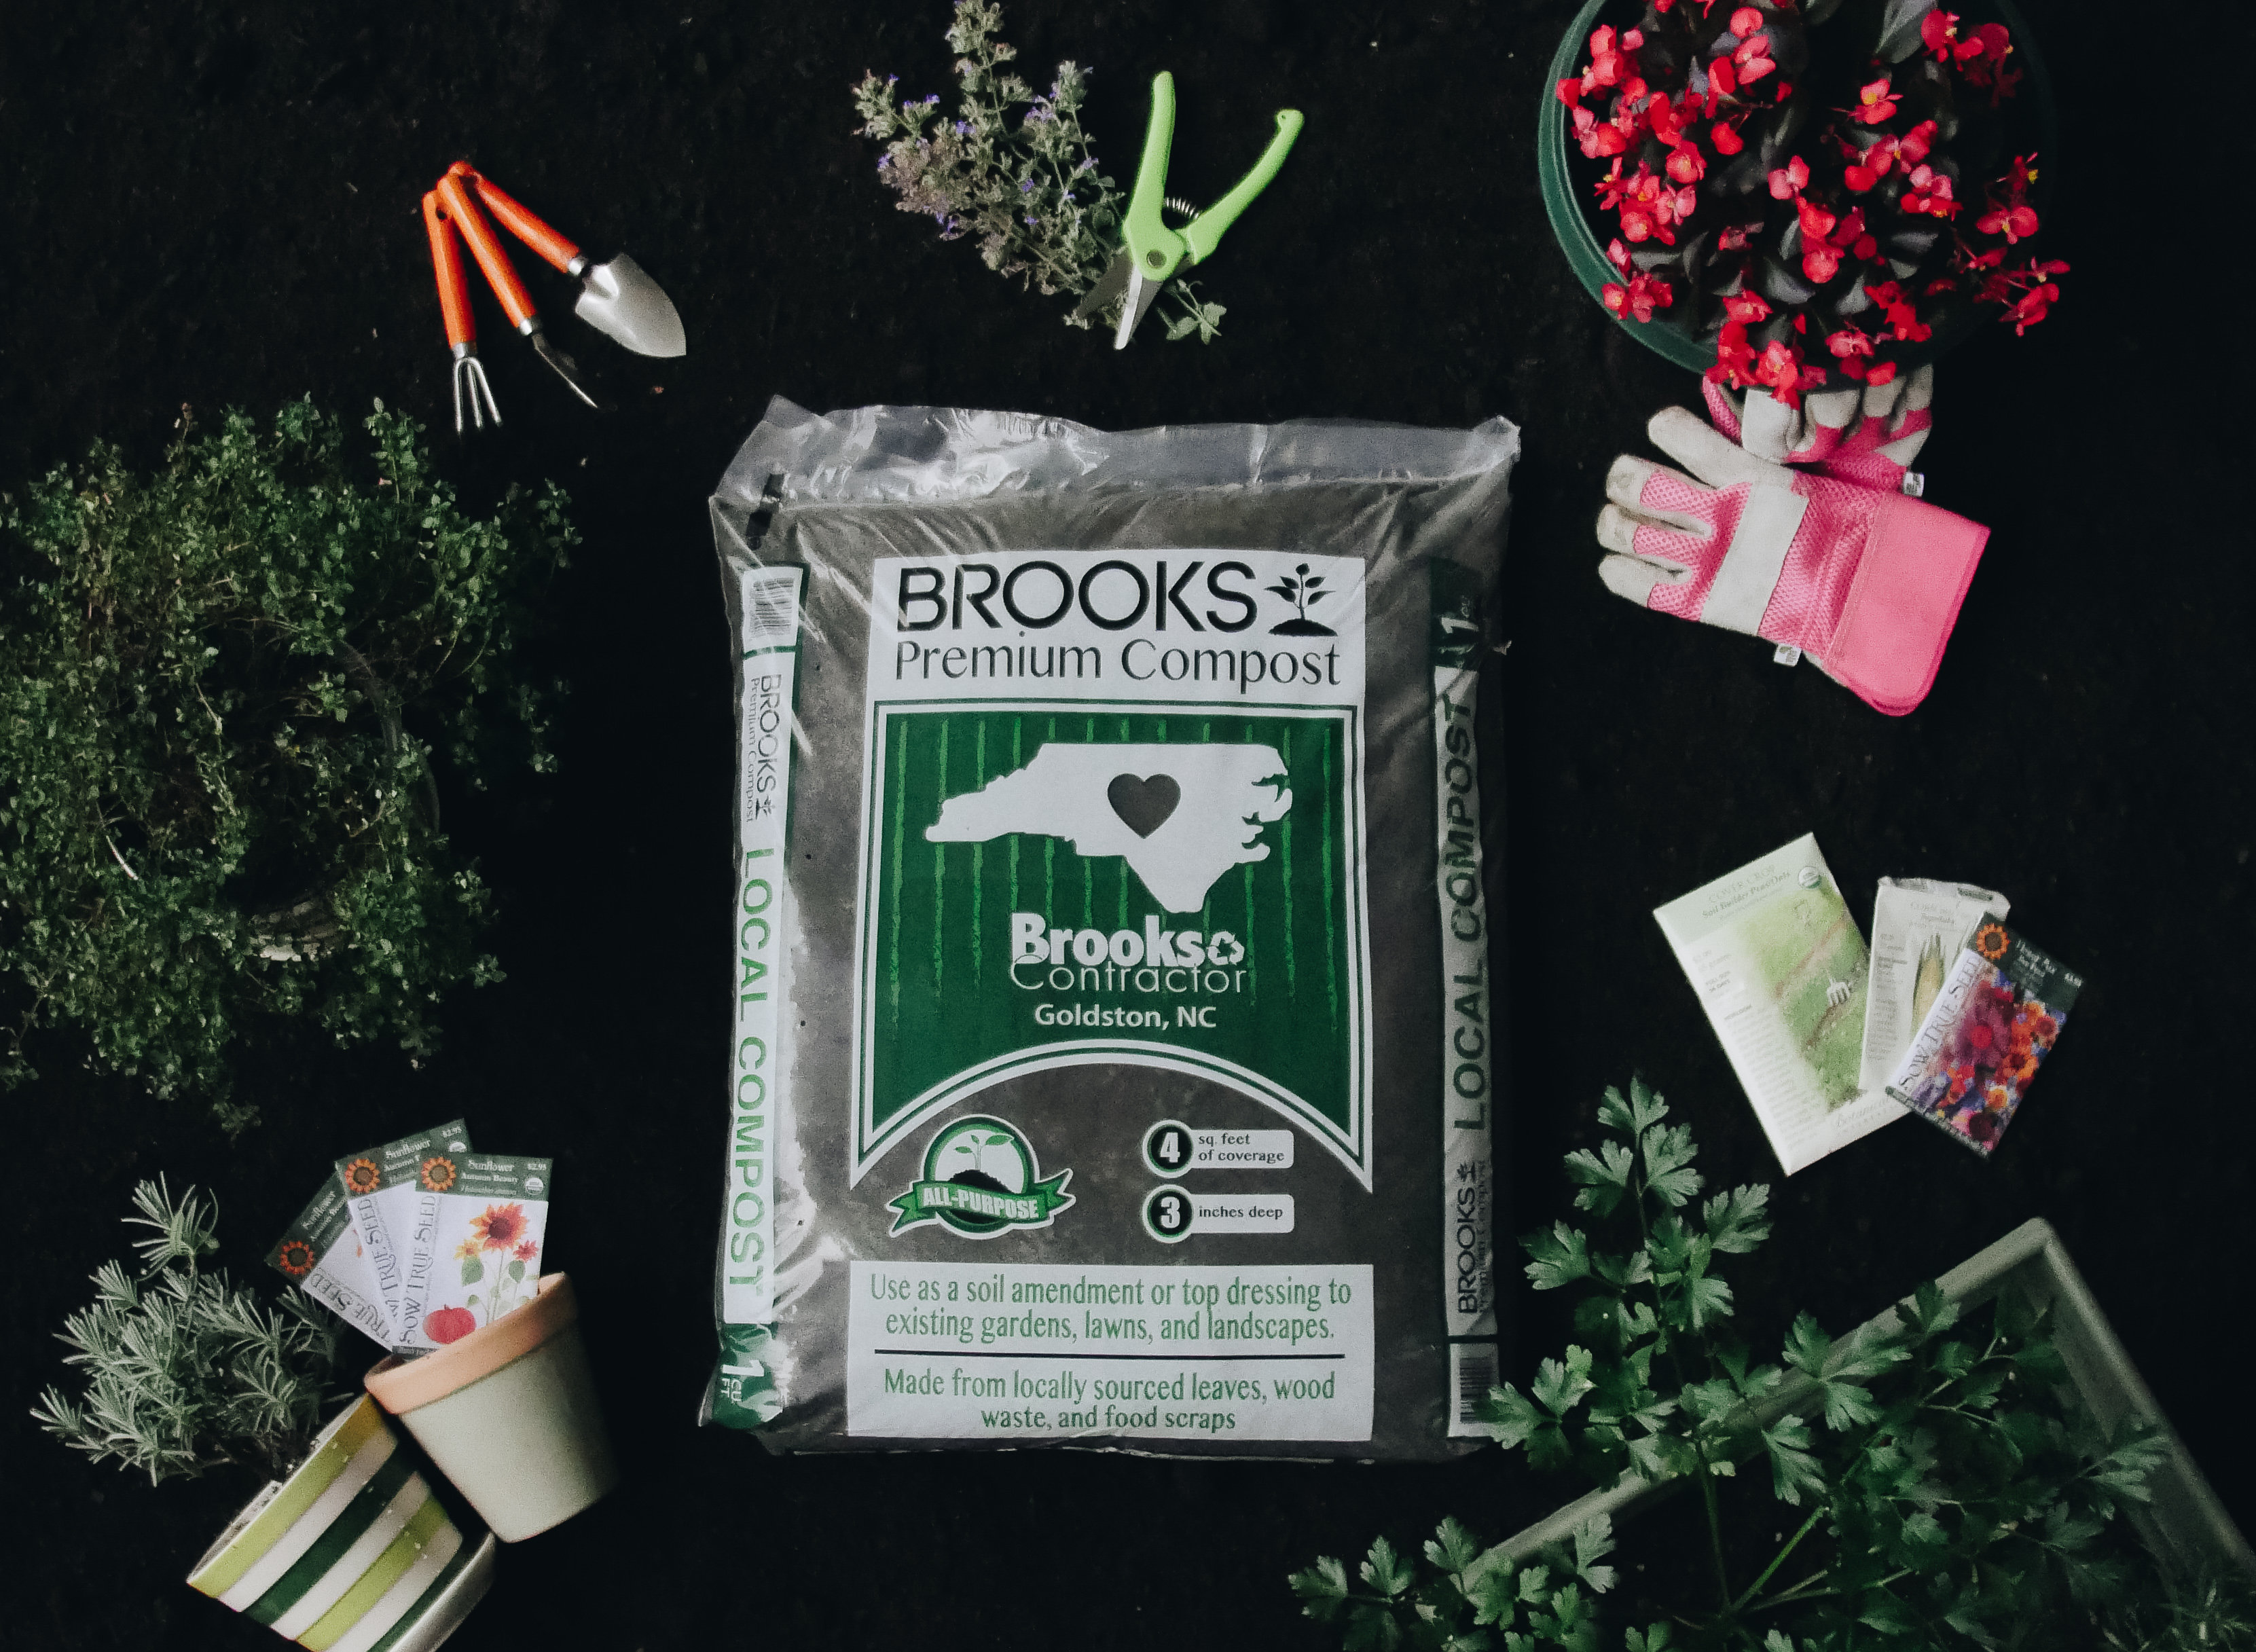 Brooks Compost